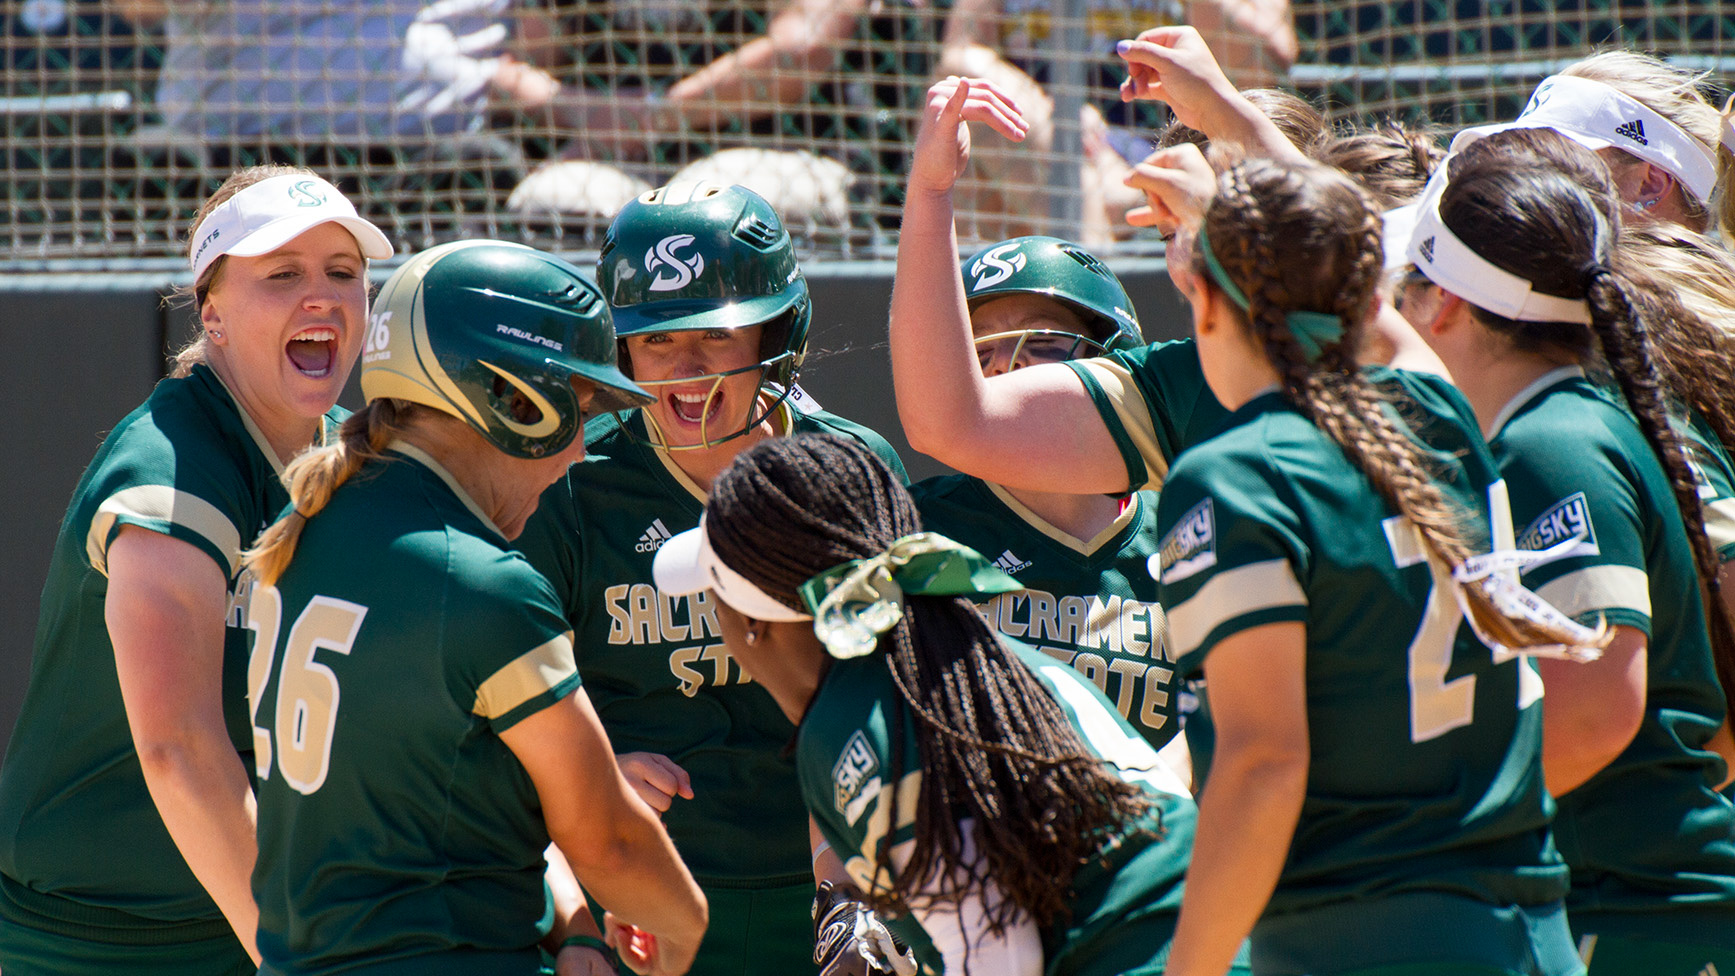 Hornets sweep Northern Colorado, move up to 4th place in Big Sky